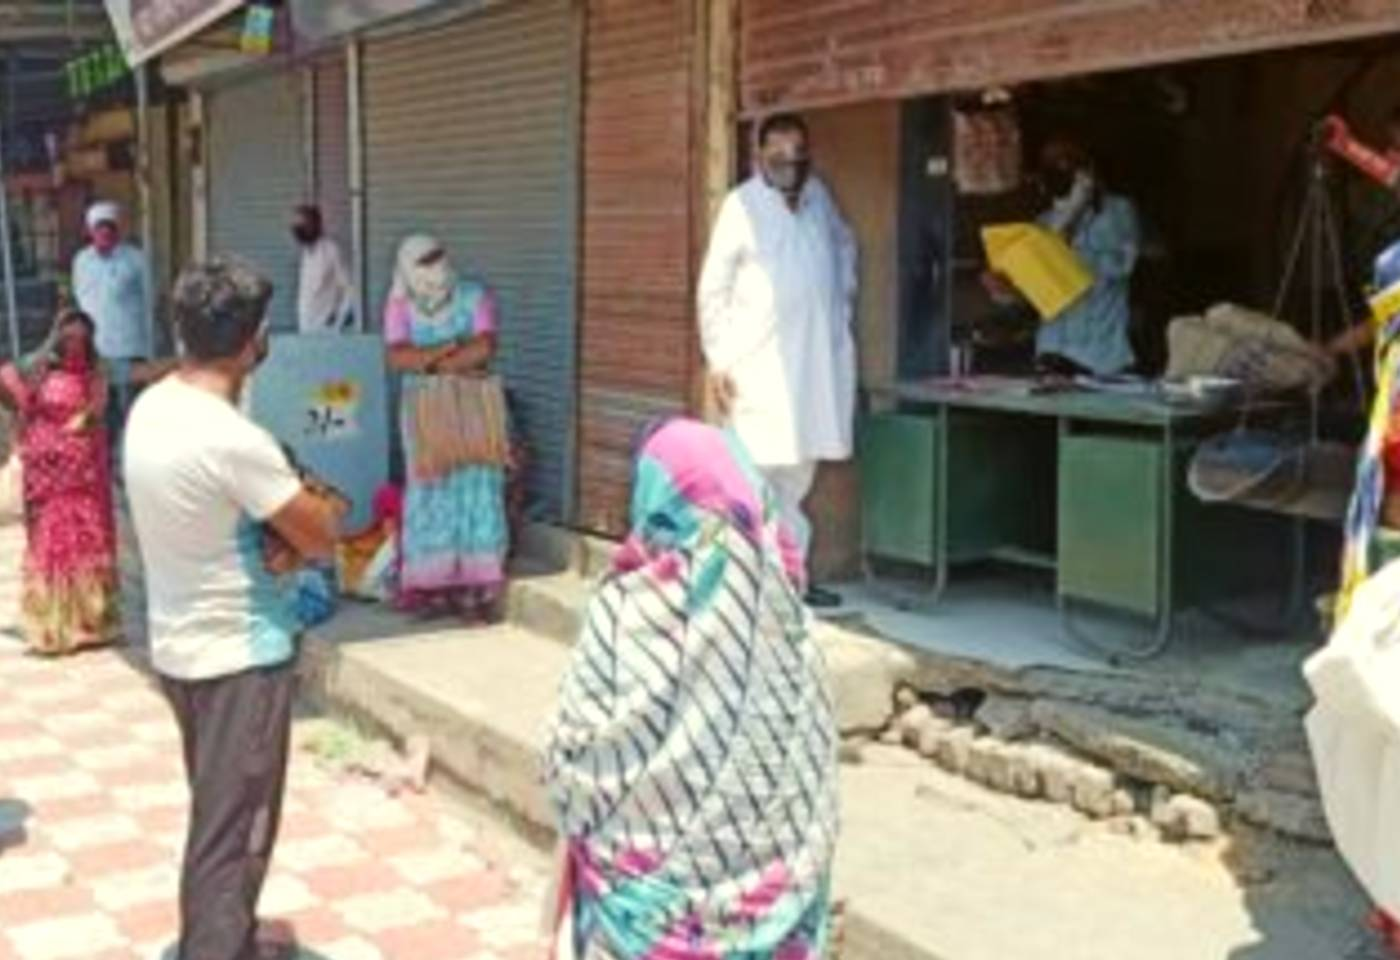 Central Govt Advisory To States To Keep Ration Shops Open All Days to Ensure Free Rations To poor